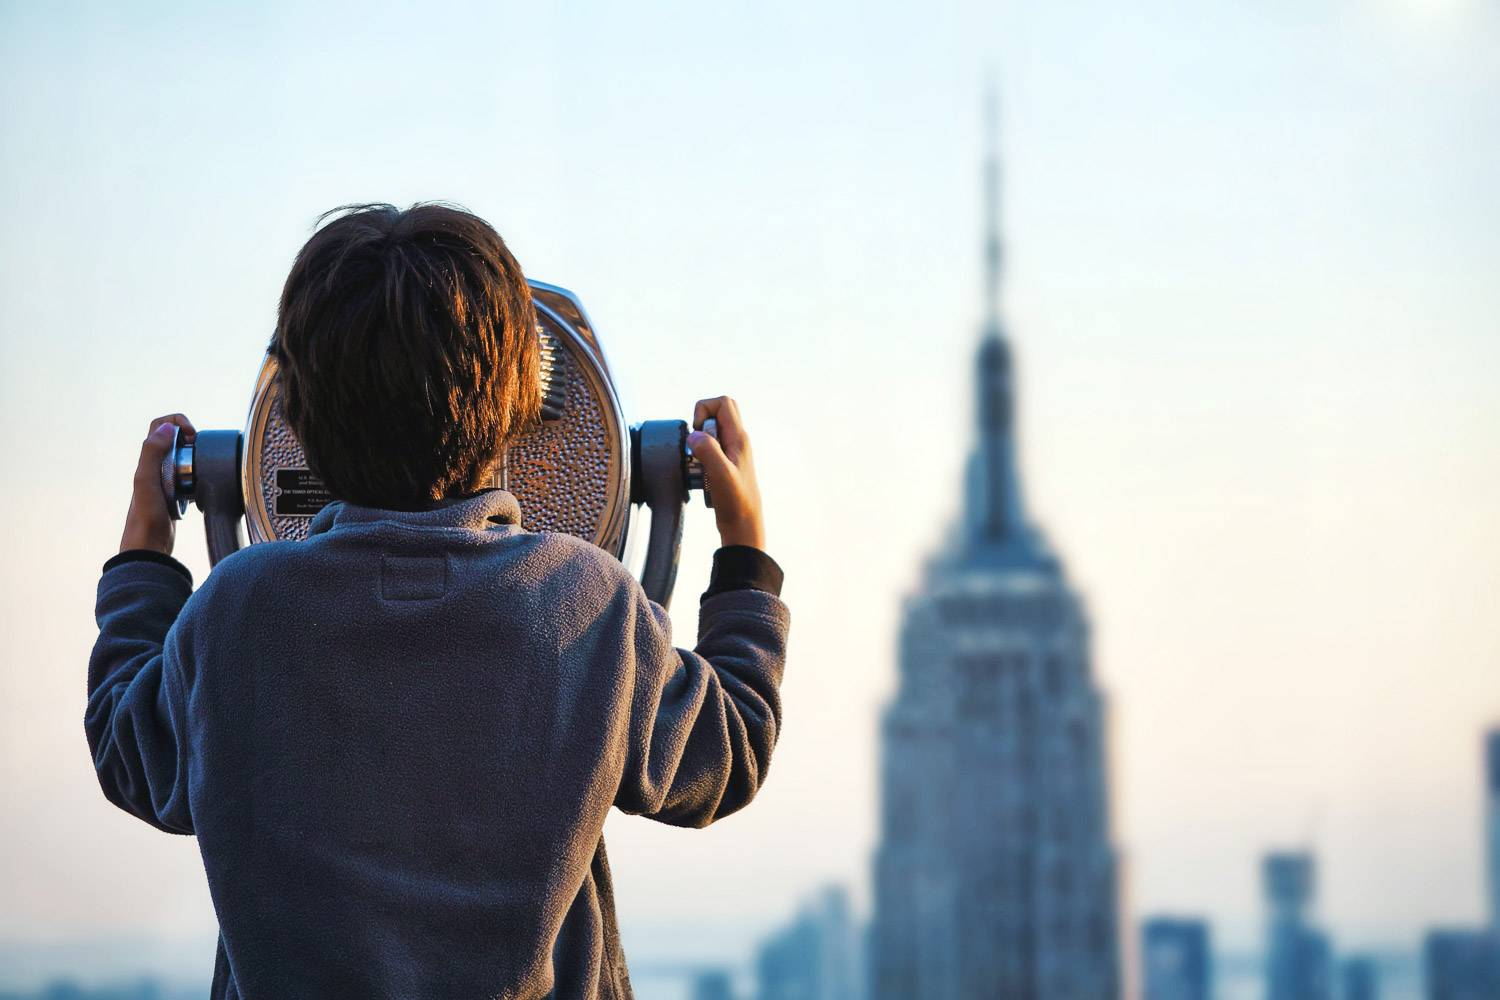 Image of kid looking through telescope at the Empire State Building (Photo credit: Unsplash)